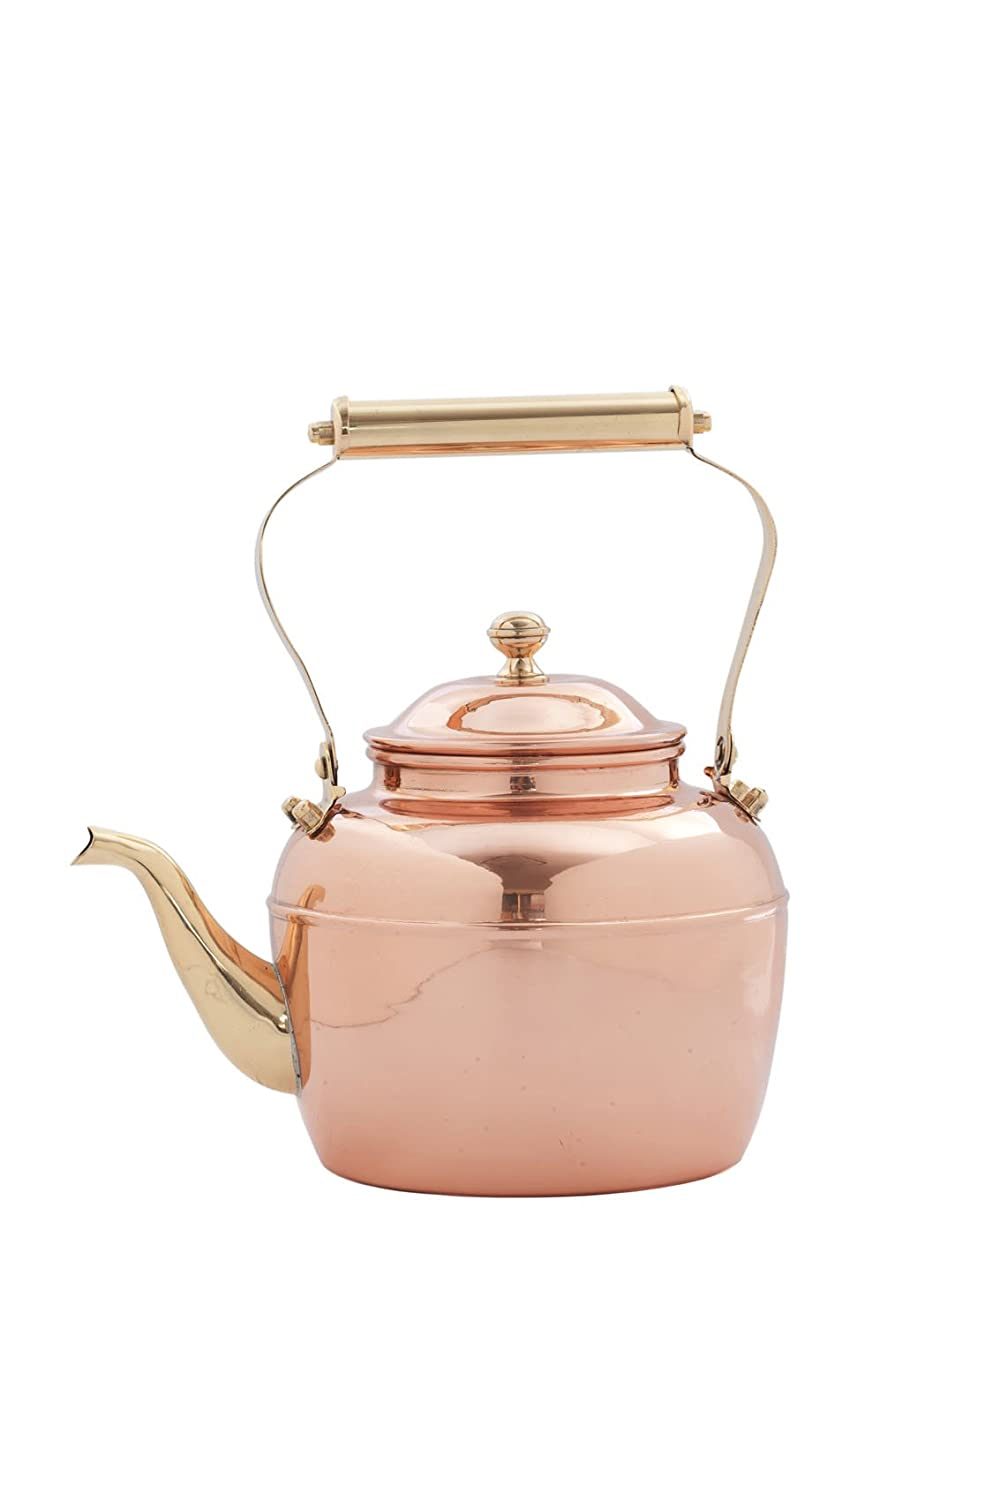 2.5-Quart Old Dutch Solid Copper Teakettle with Brass Handle